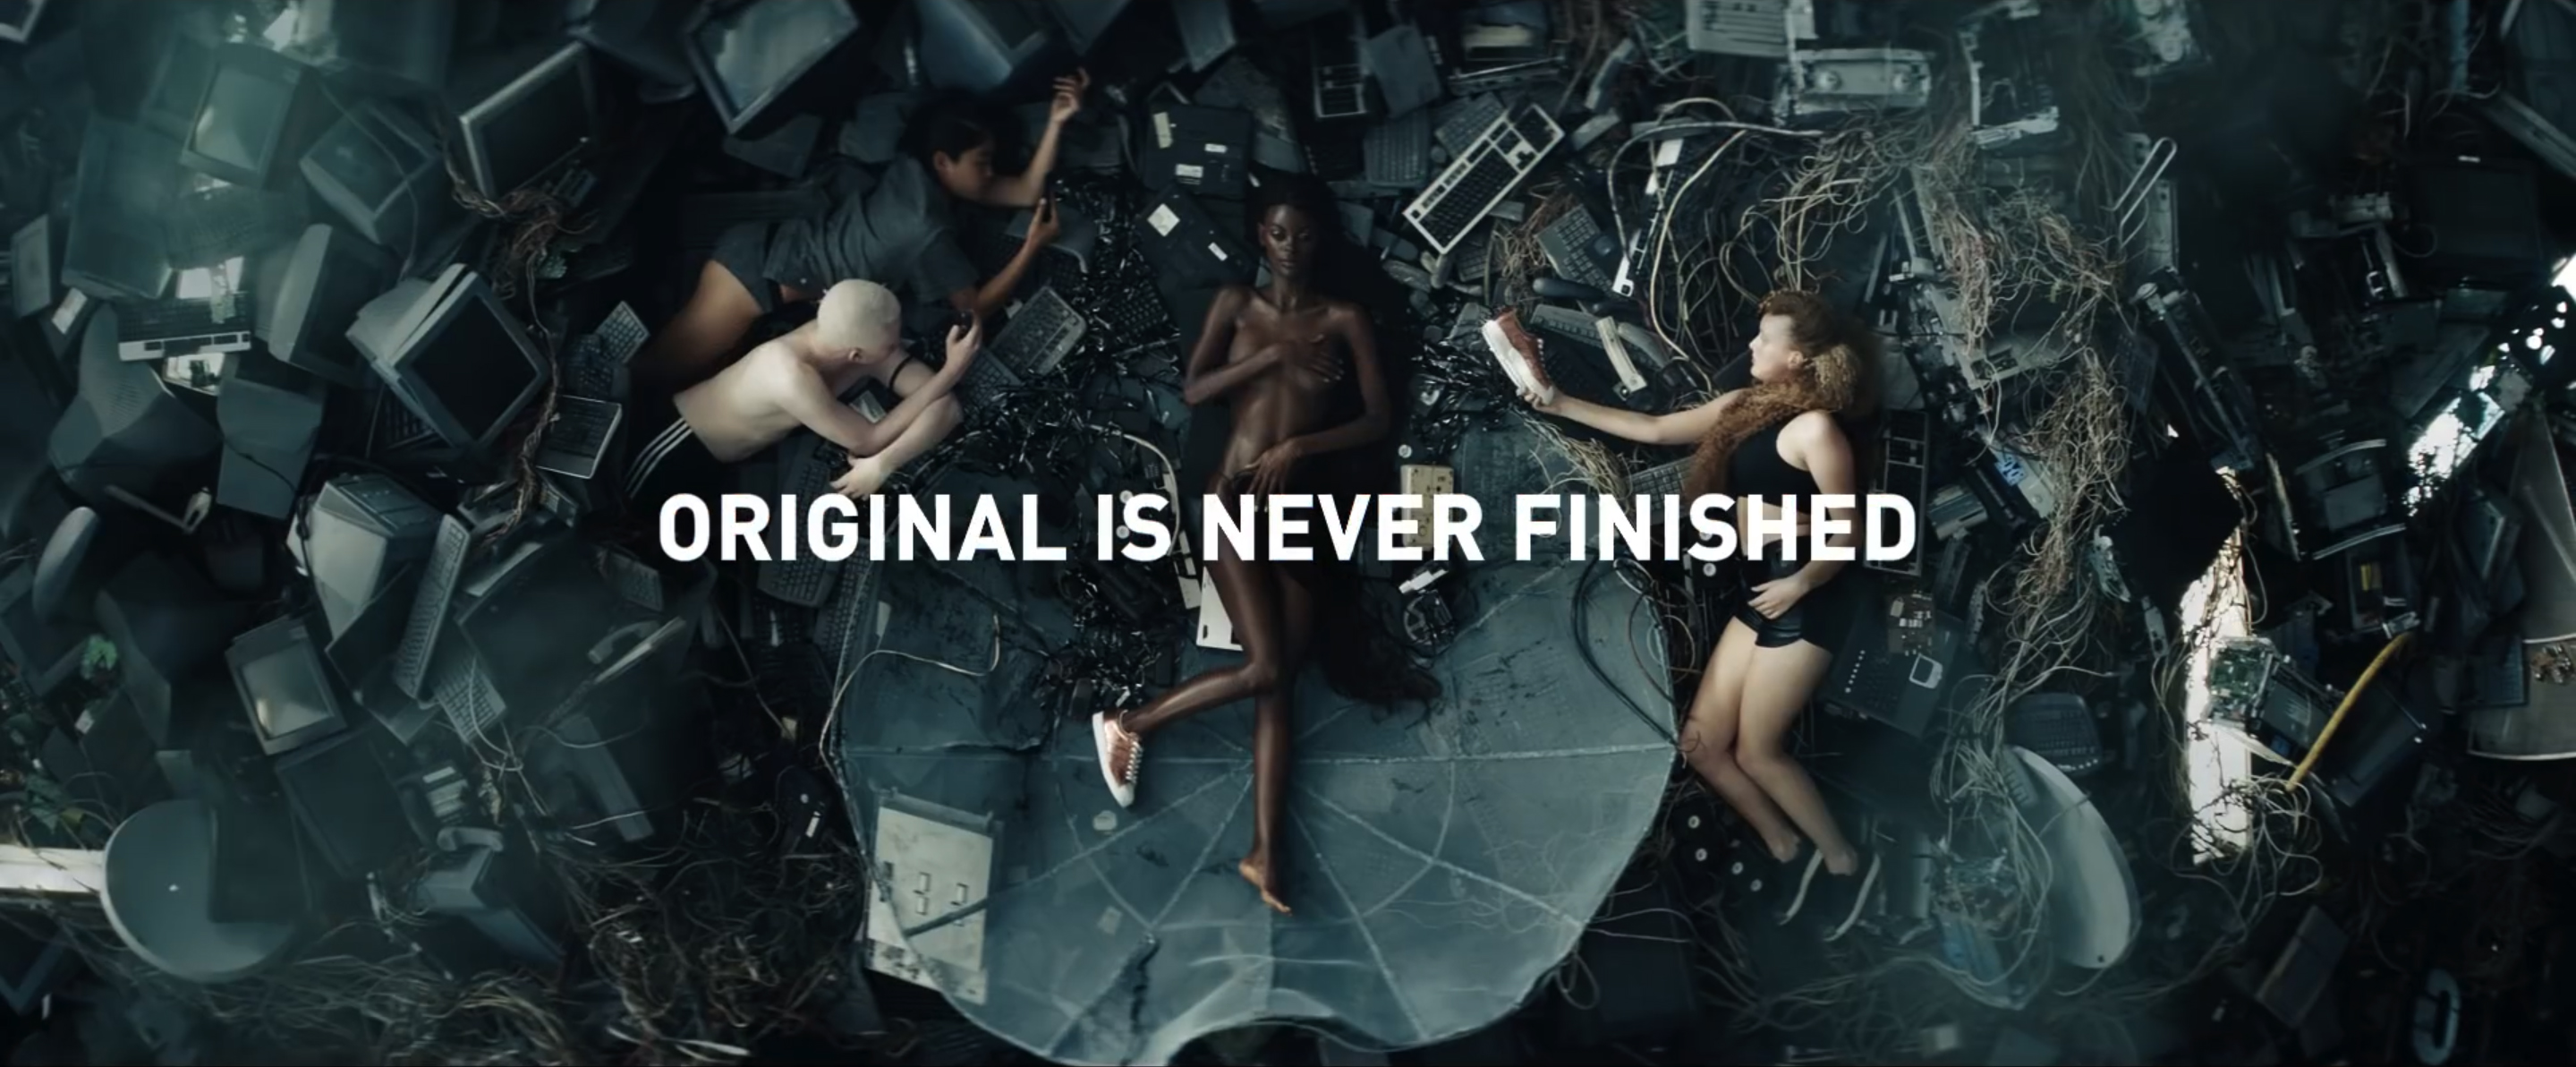 adidas originals original is never finished